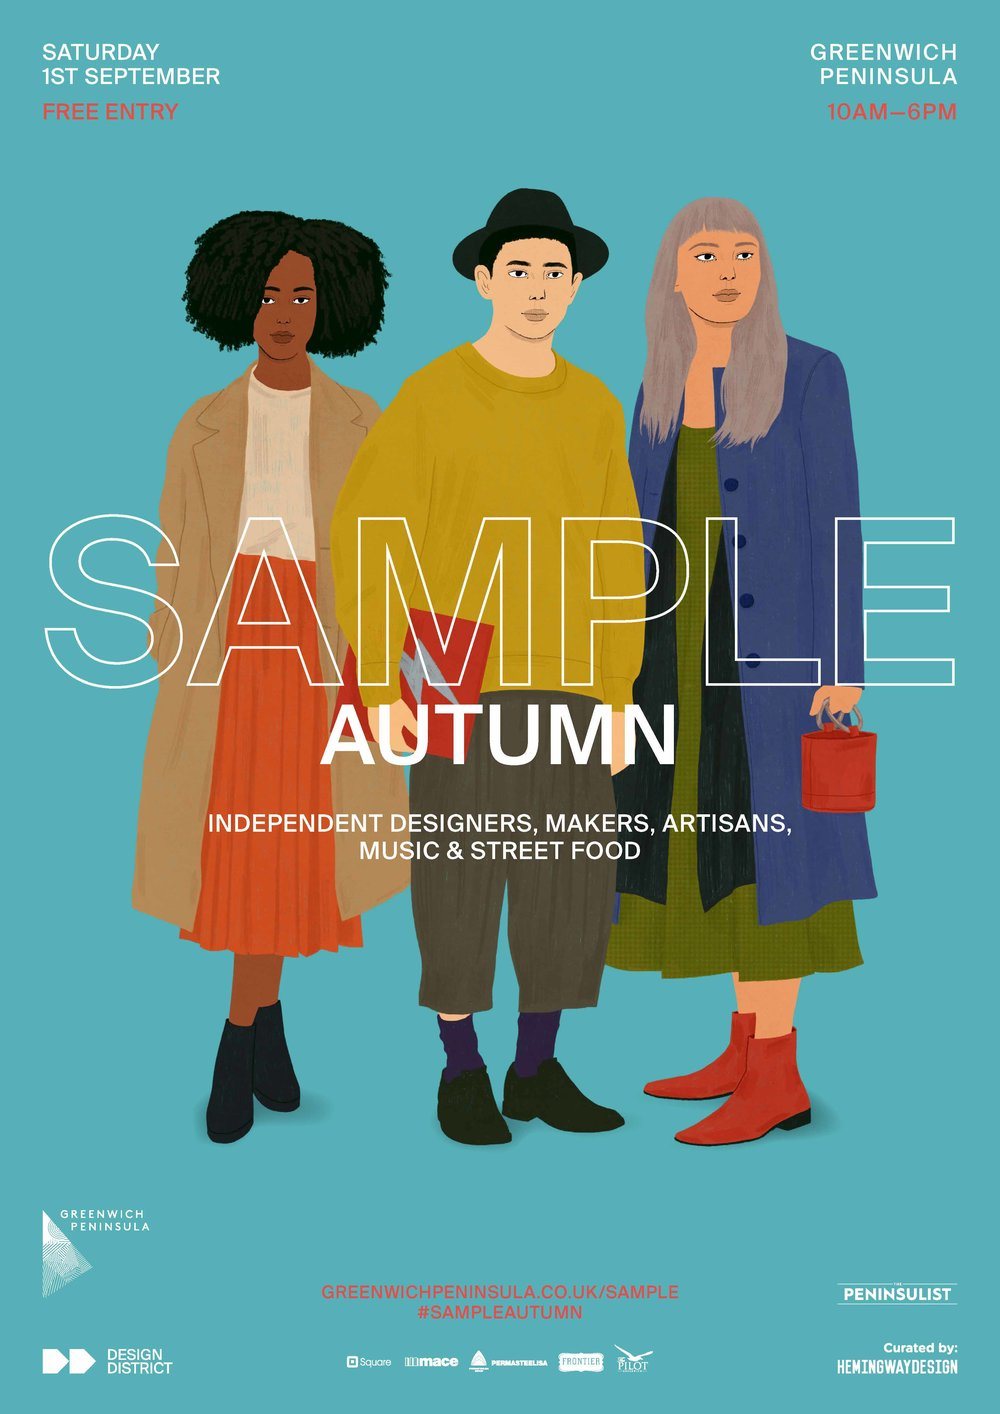 Fairtrade-and-Organic-Art-Nude-Clothing-Workshops-Sustainable-Ethical-Sample-Autumn-Greenwich-Peninsula